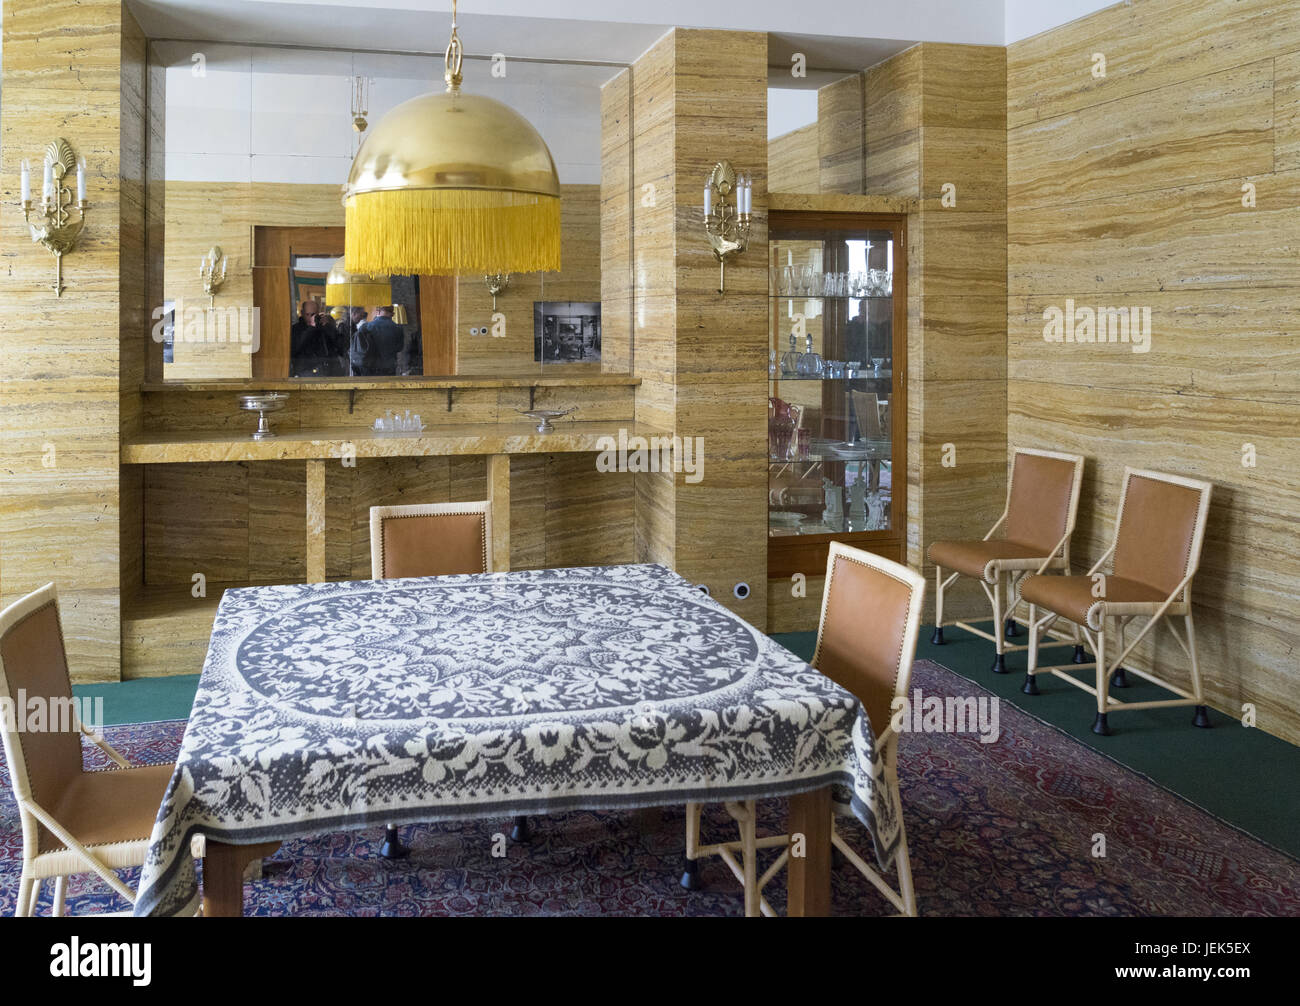 Adolf Loos Interieur in Pilsen Stockbild